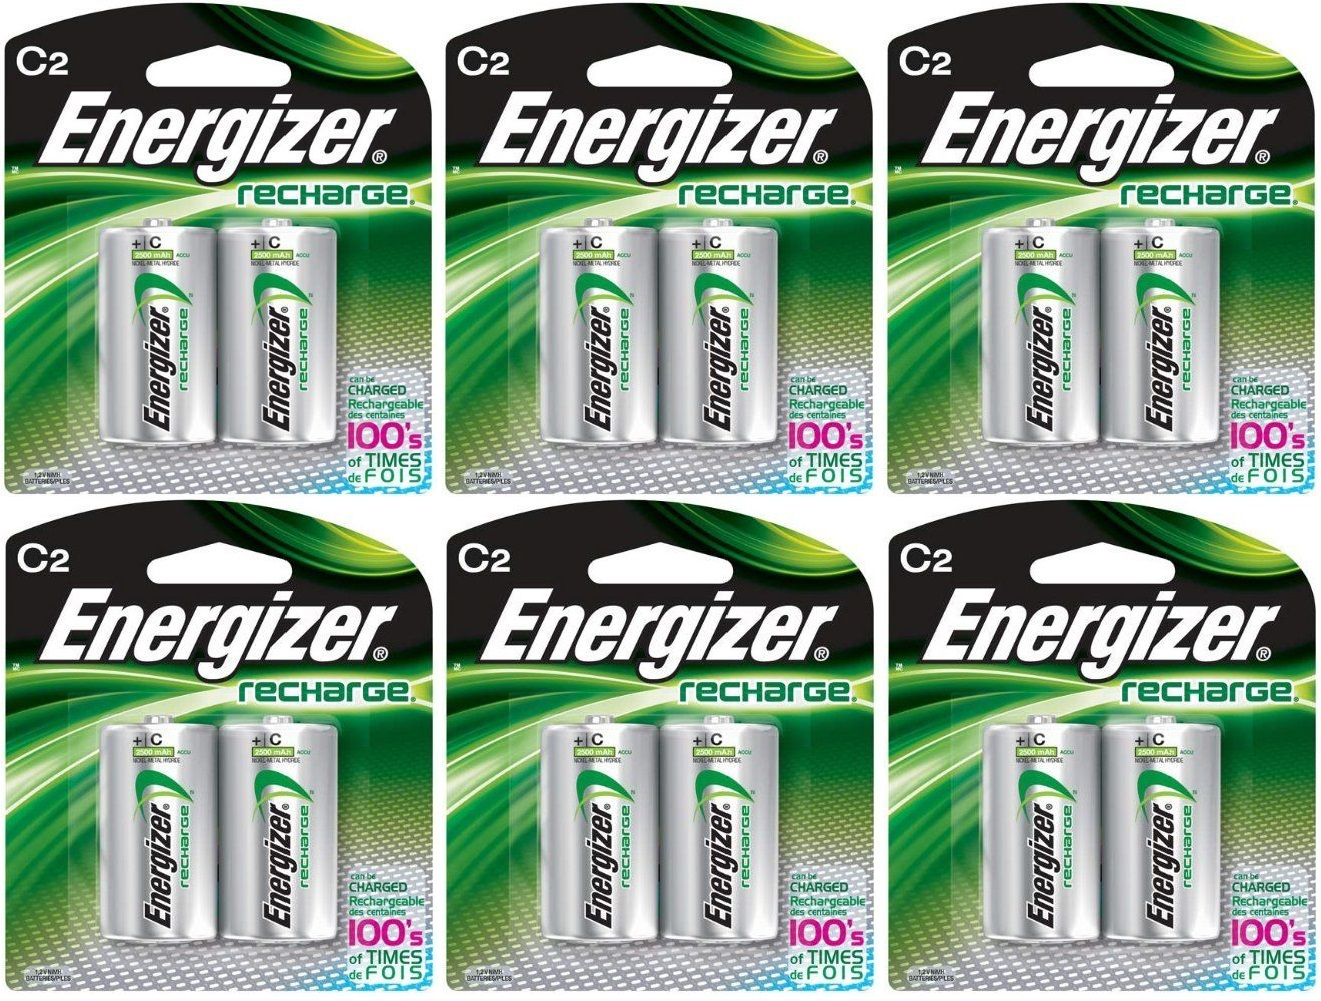 6 Energizer Rechargeable C Nimh Batteries 2 Pack by